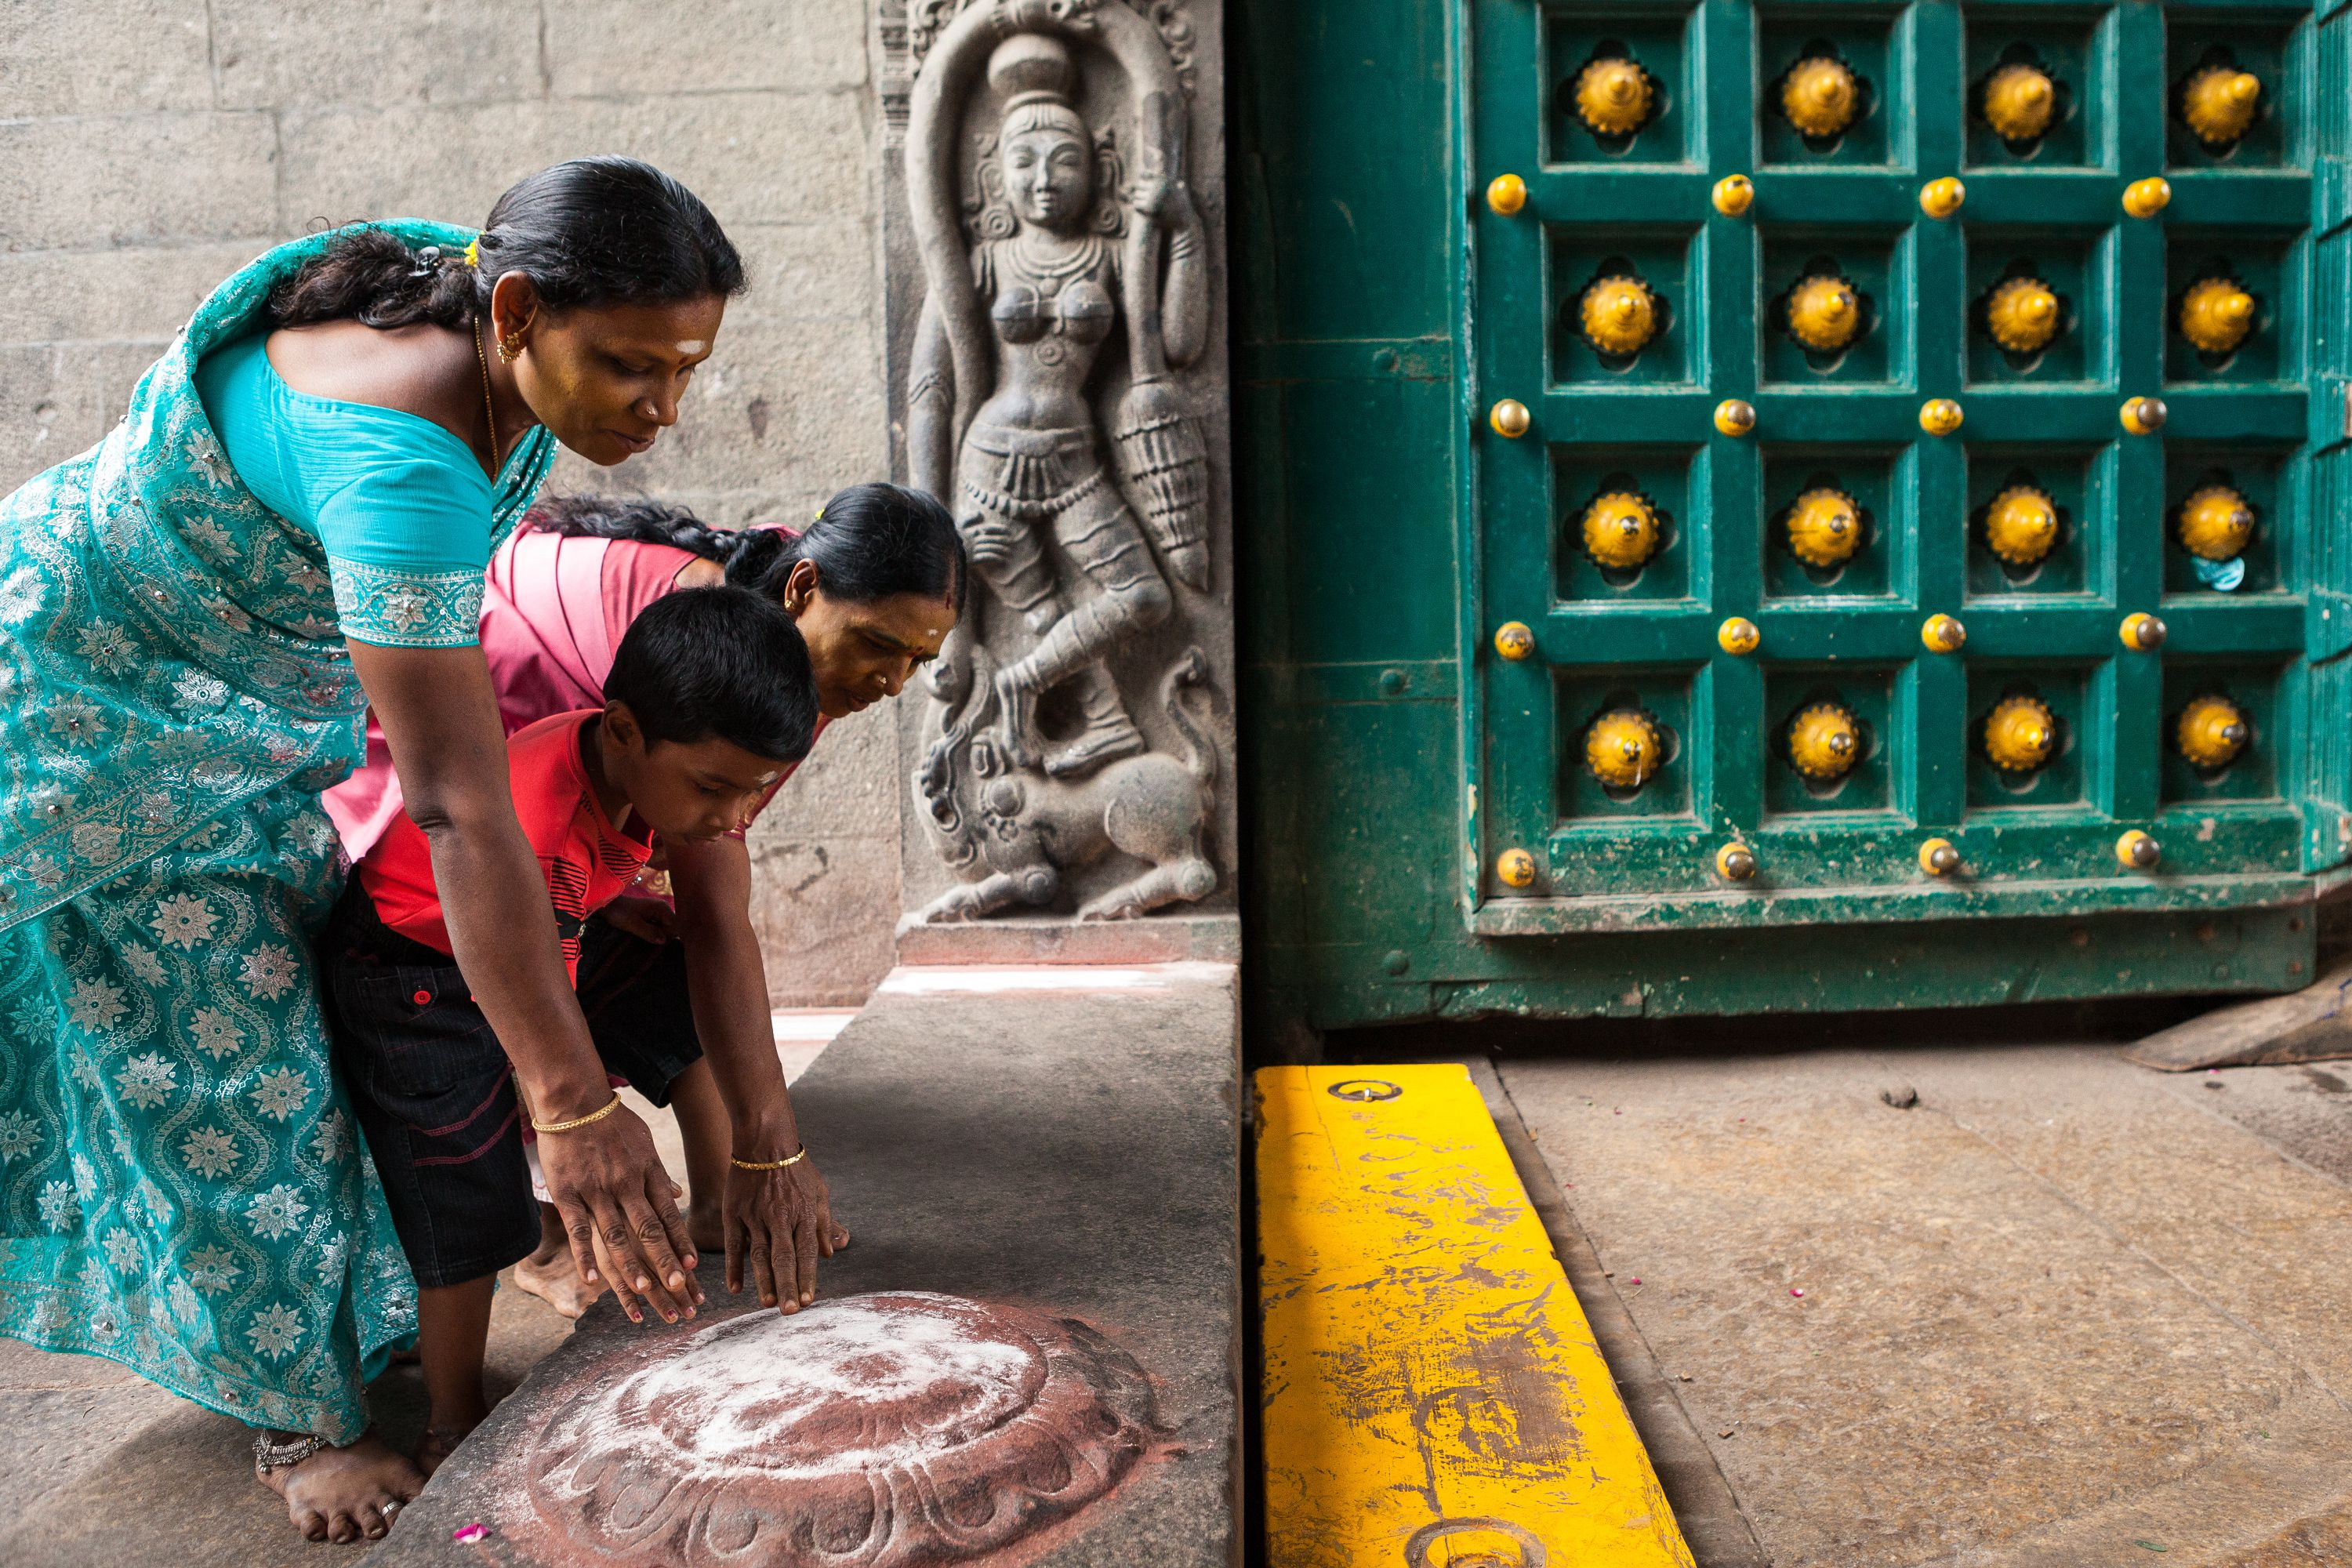 Hindu pilgrims touching the ground at entrance of the Kapaleeshwarar Temple located in Mylapore, Chennai.